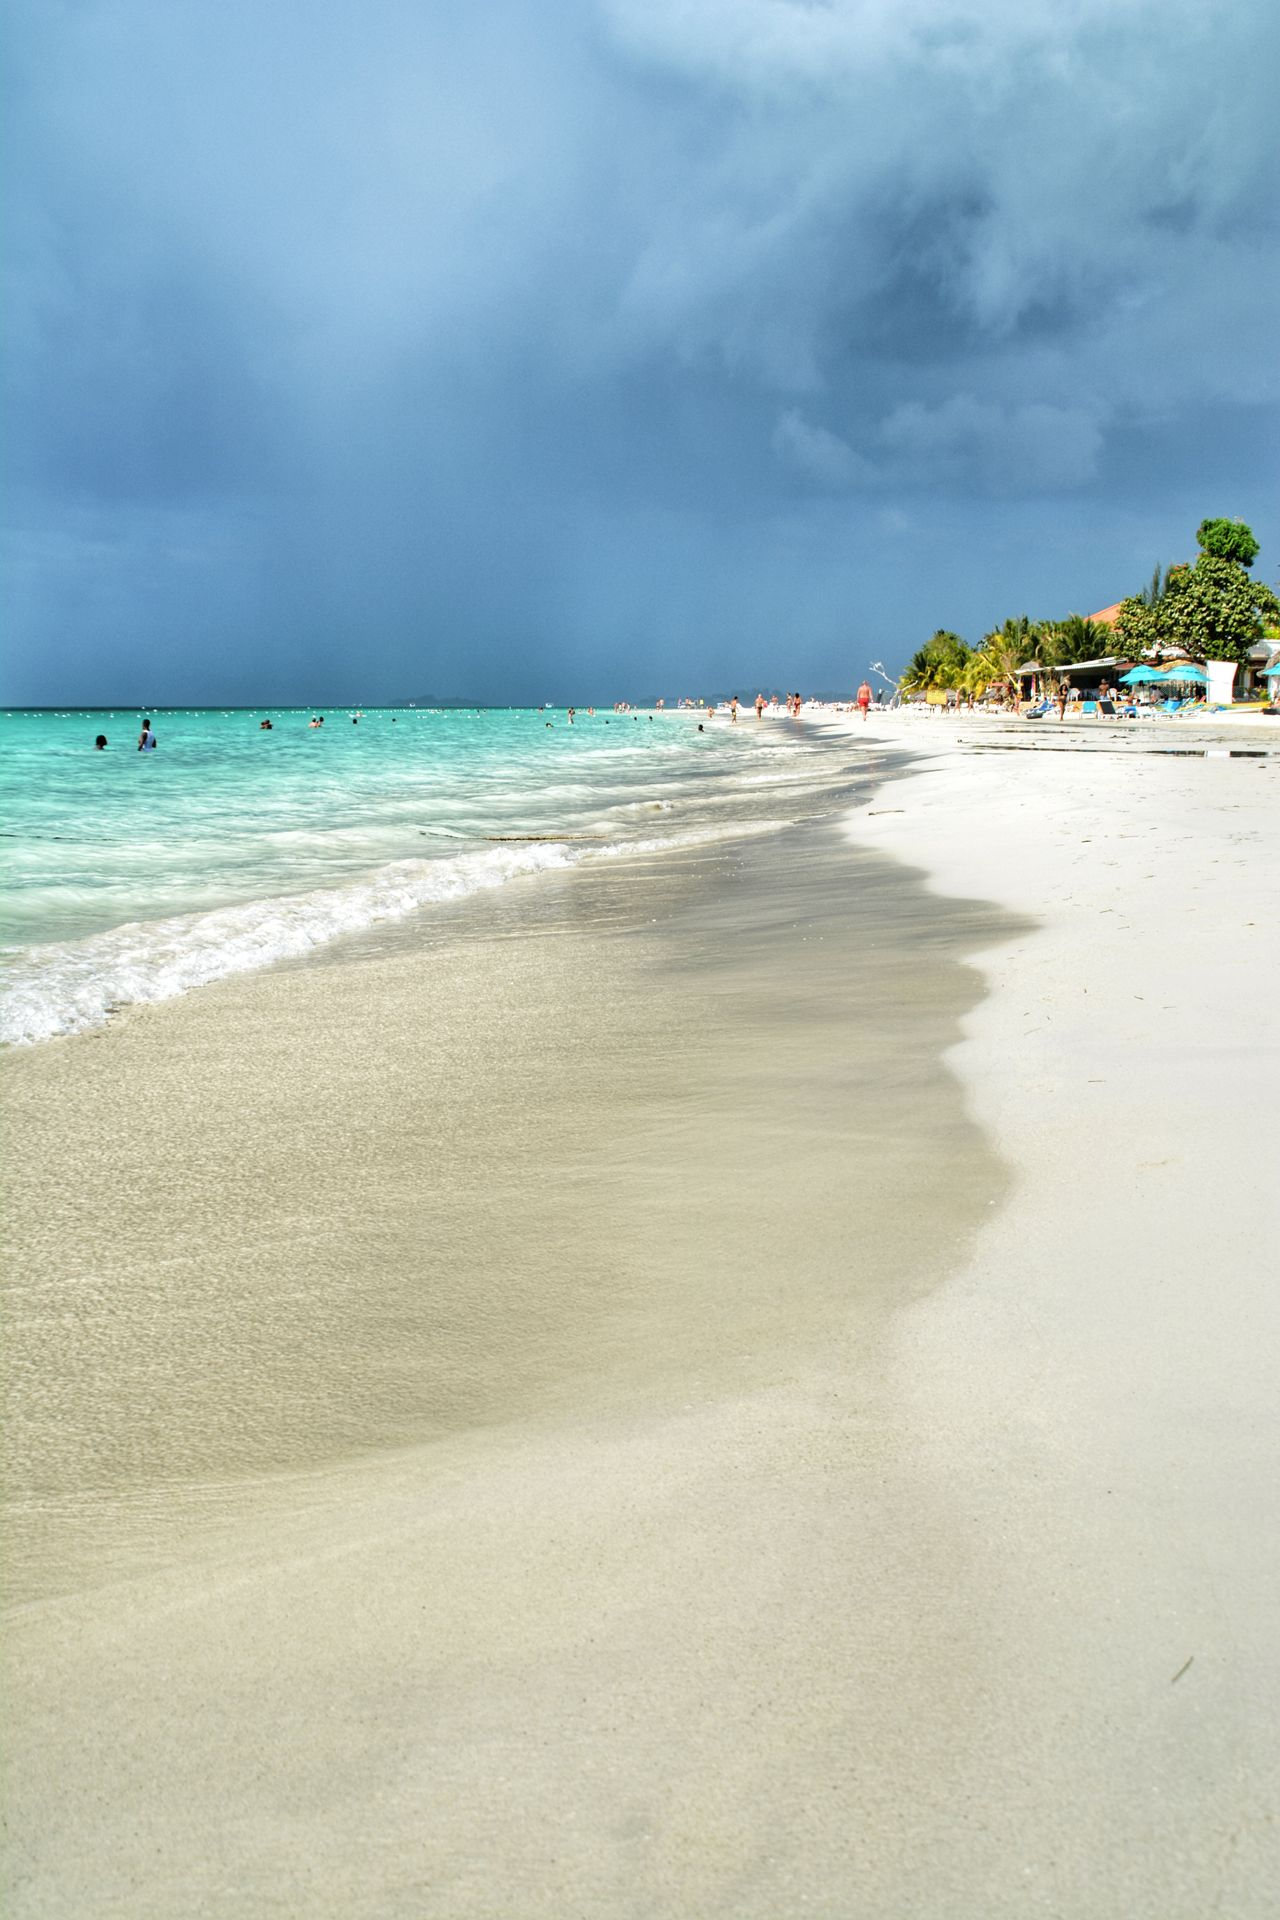 Clearwater Ocean Travel Destinations Vacations Water Beachtime Day Sky Sea Cloud - Sky Sand Nature Sunlight Beauty In Nature Beach Dark Horizon